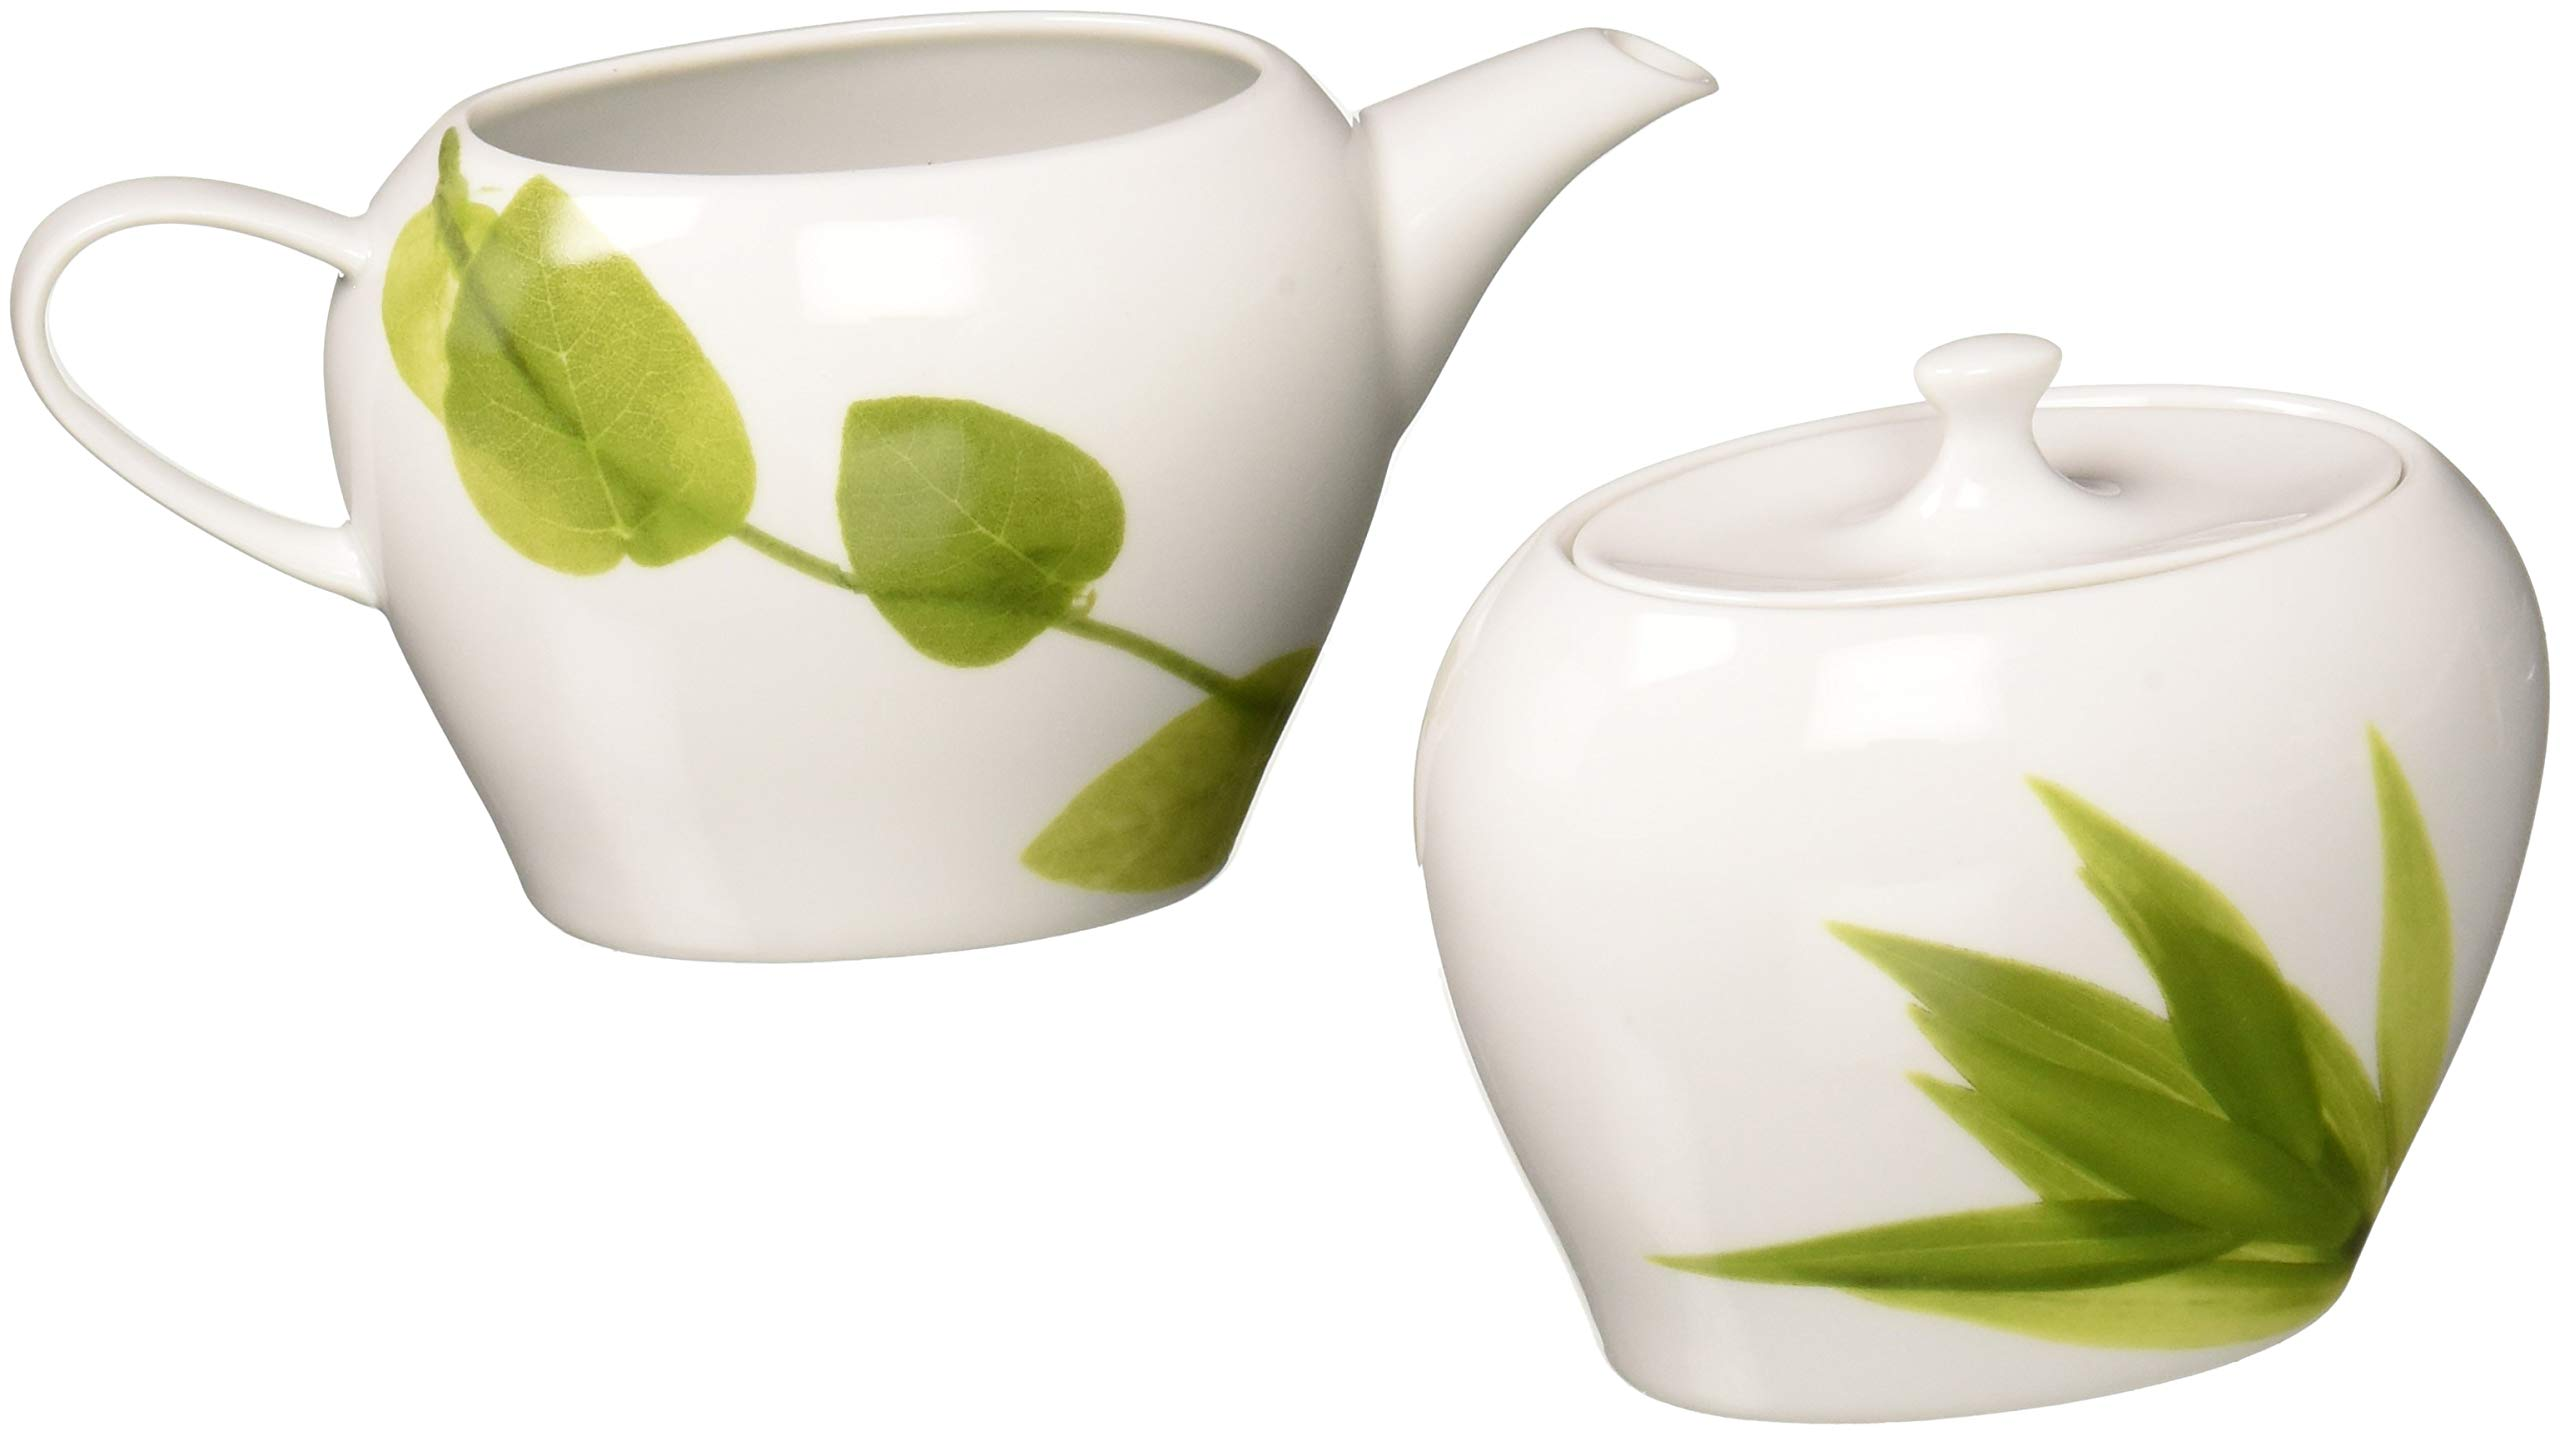 Mikasa Daylight Sugar Bowl and Creamer Set